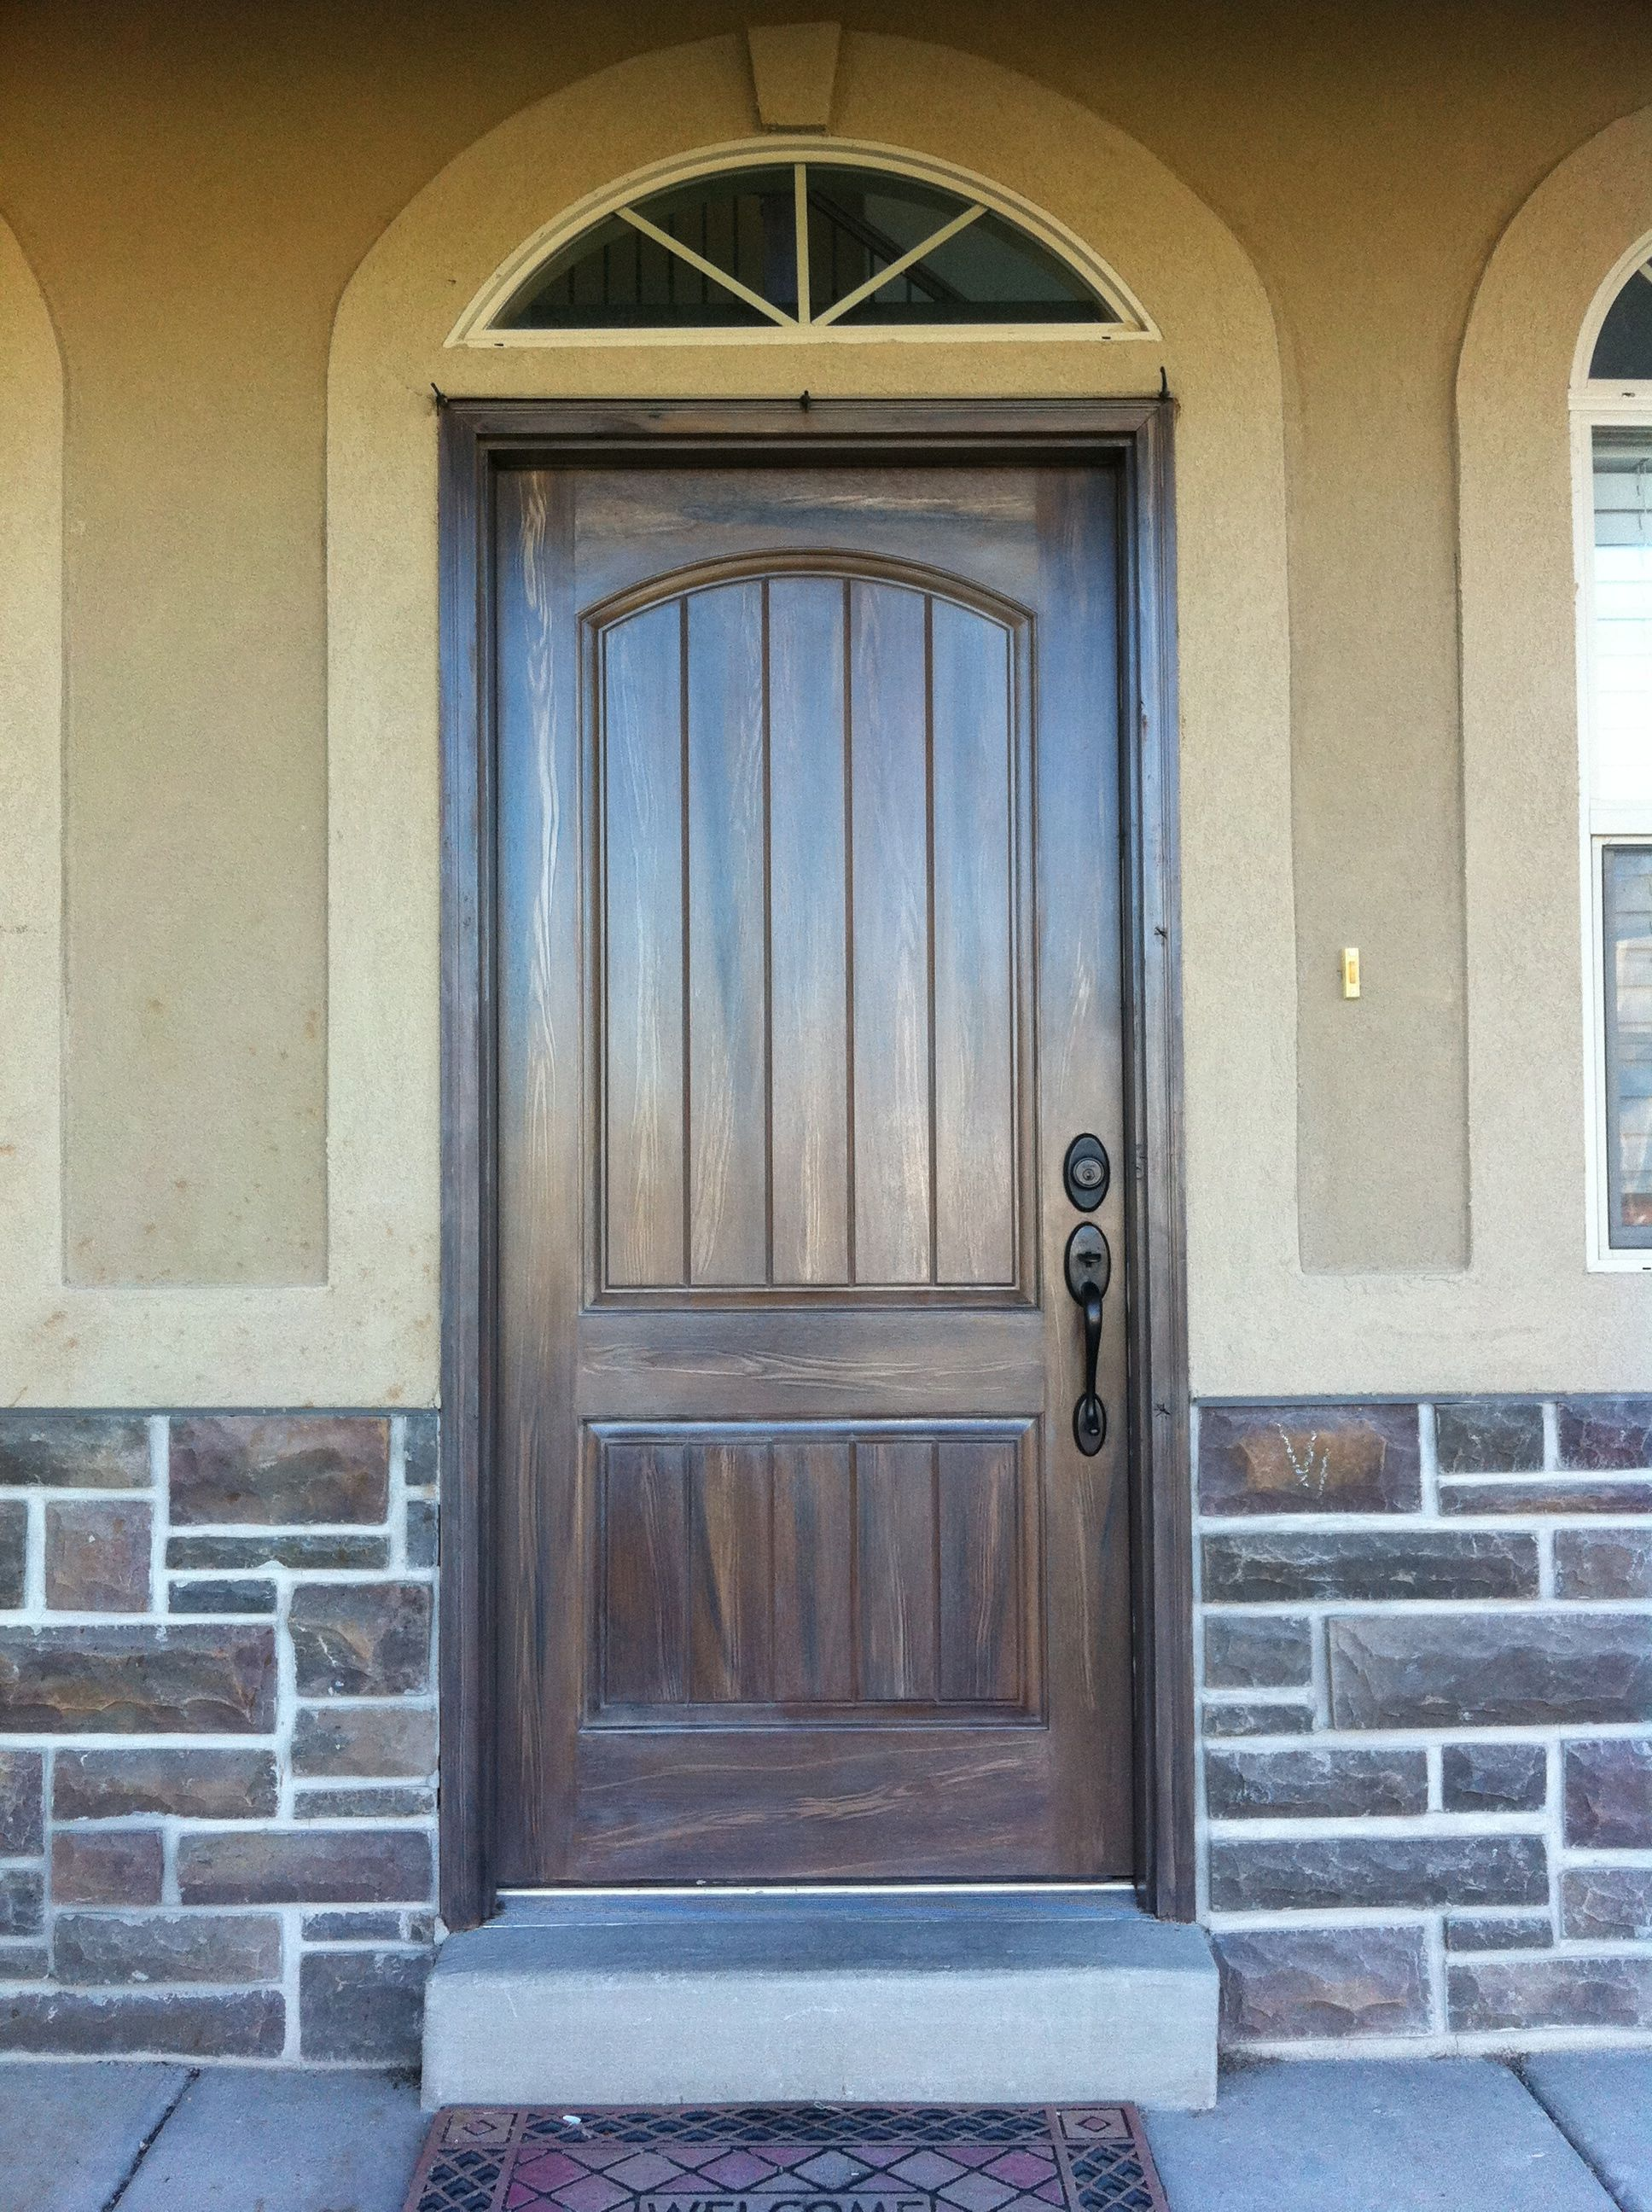 2592 #624C2A Exterior Fiberglass Doors That Have Been Wood Grained Or Faux Finished  picture/photo Fibreglass Exterior Doors 41191936